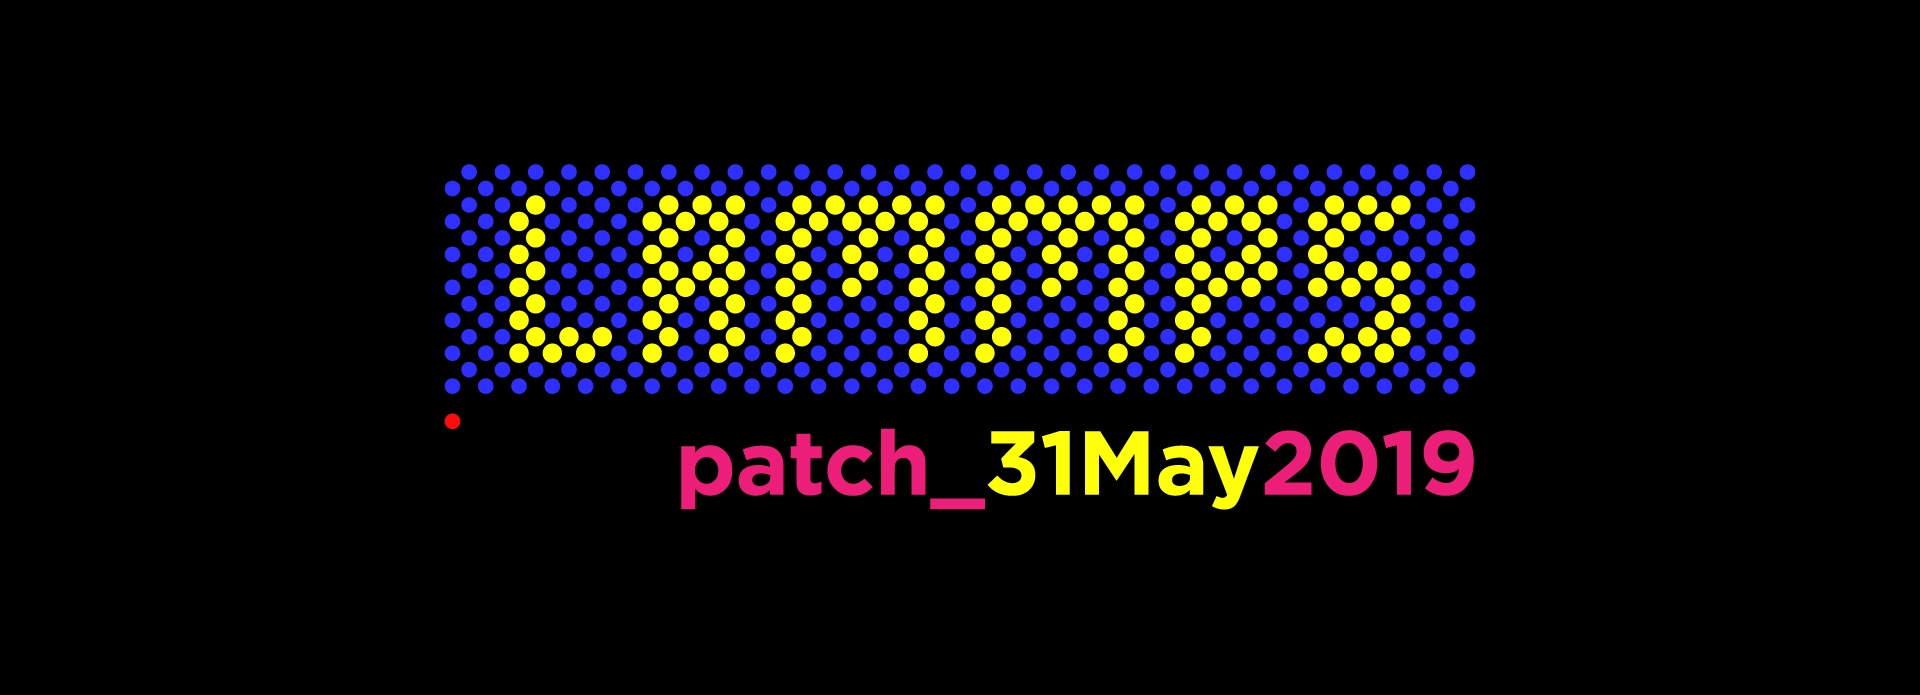 LAMMPS-patch-Mar29_2019.jpg